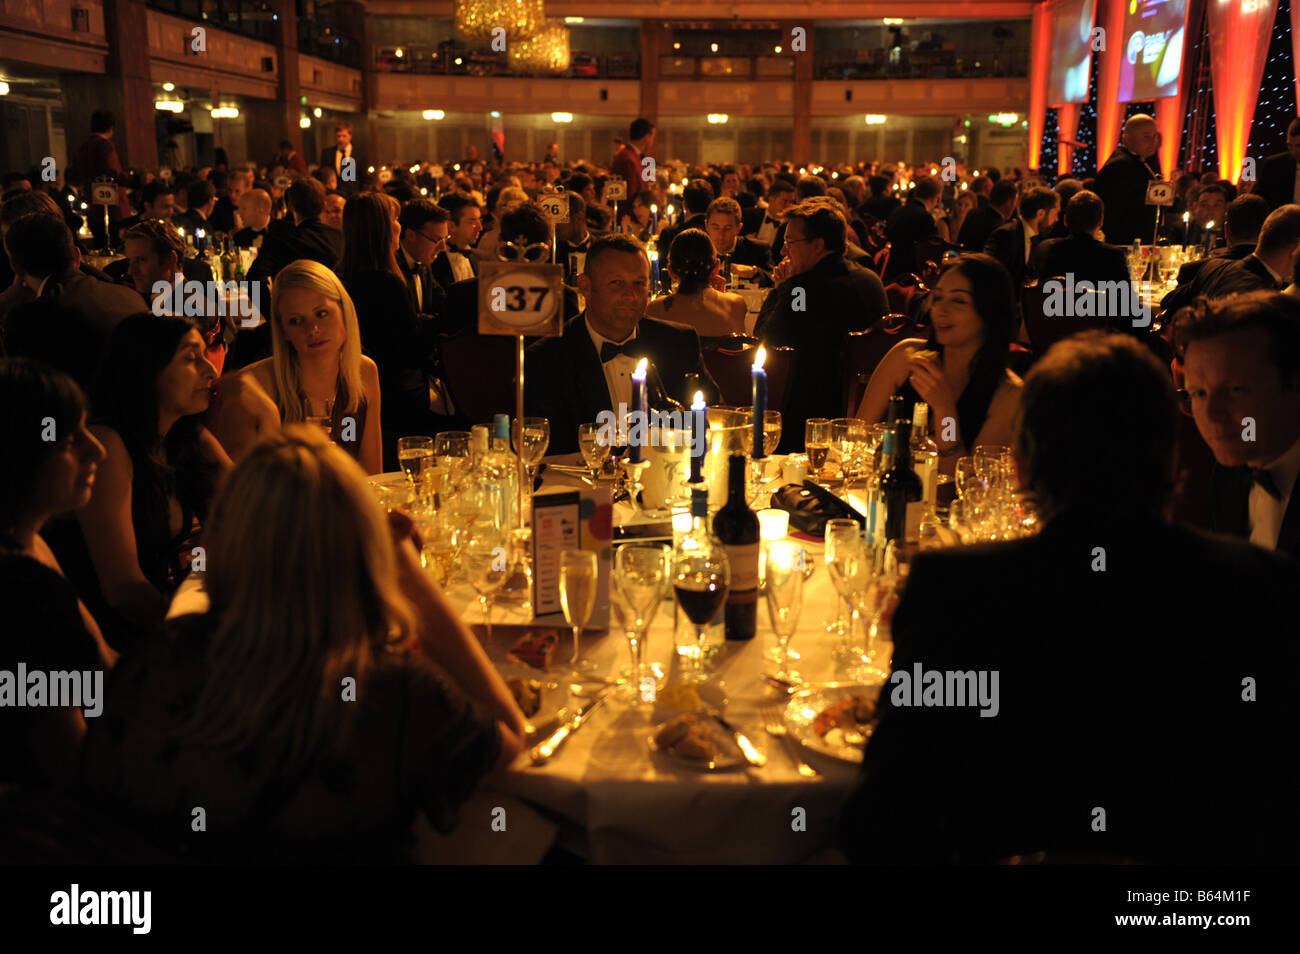 Dinner table at large evening function - Stock Image